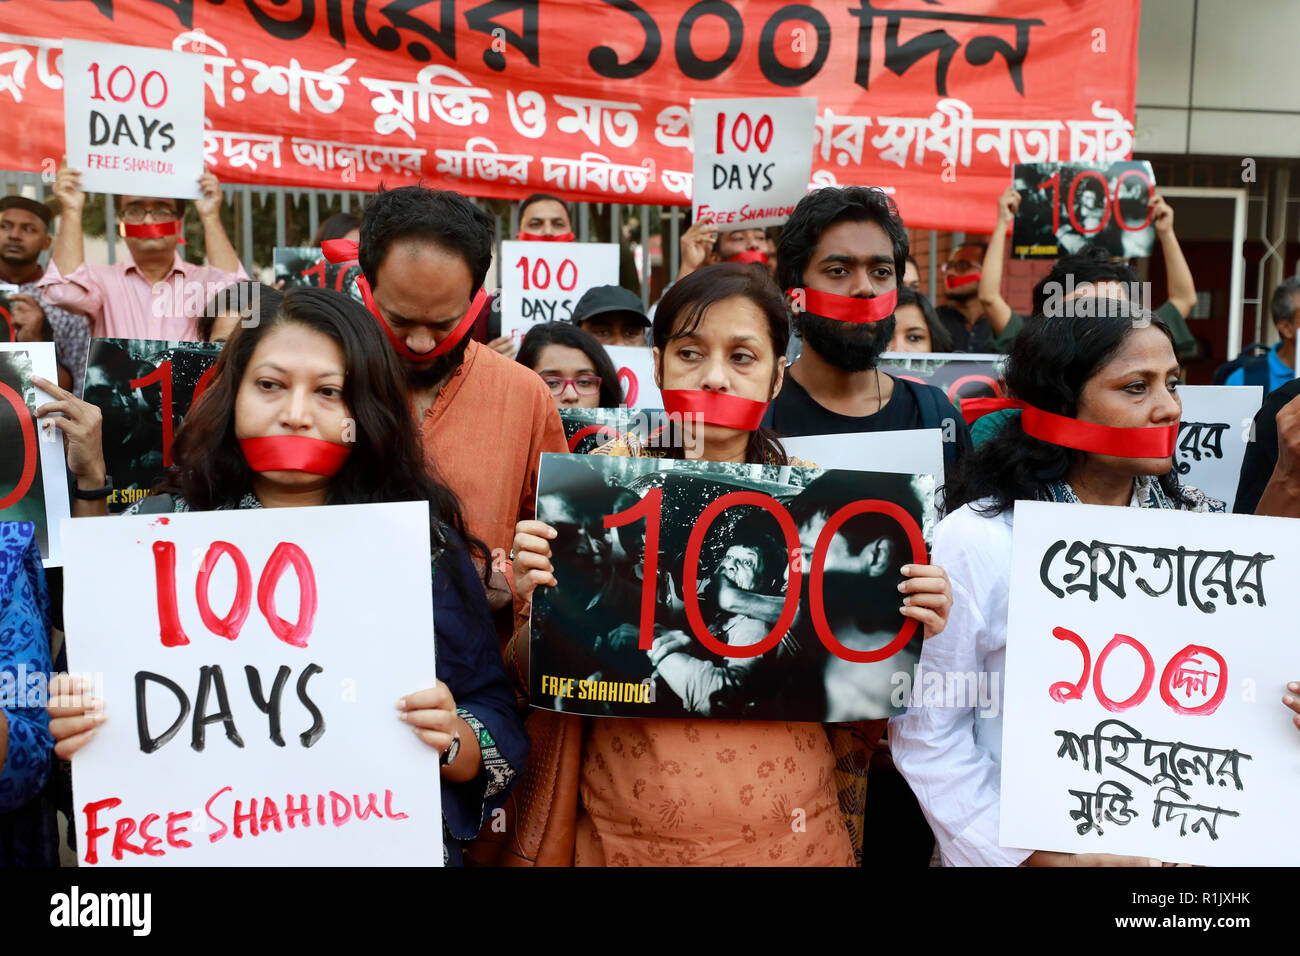 Dhaka, Bangladesh - November 13, 2018: Photographers gathered at Shahbag in Dhaka, holding in protest and demanding the immediate release of photographer Shahidul Alam. Credit: SK Hasan Ali/Alamy Live News - Stock Image